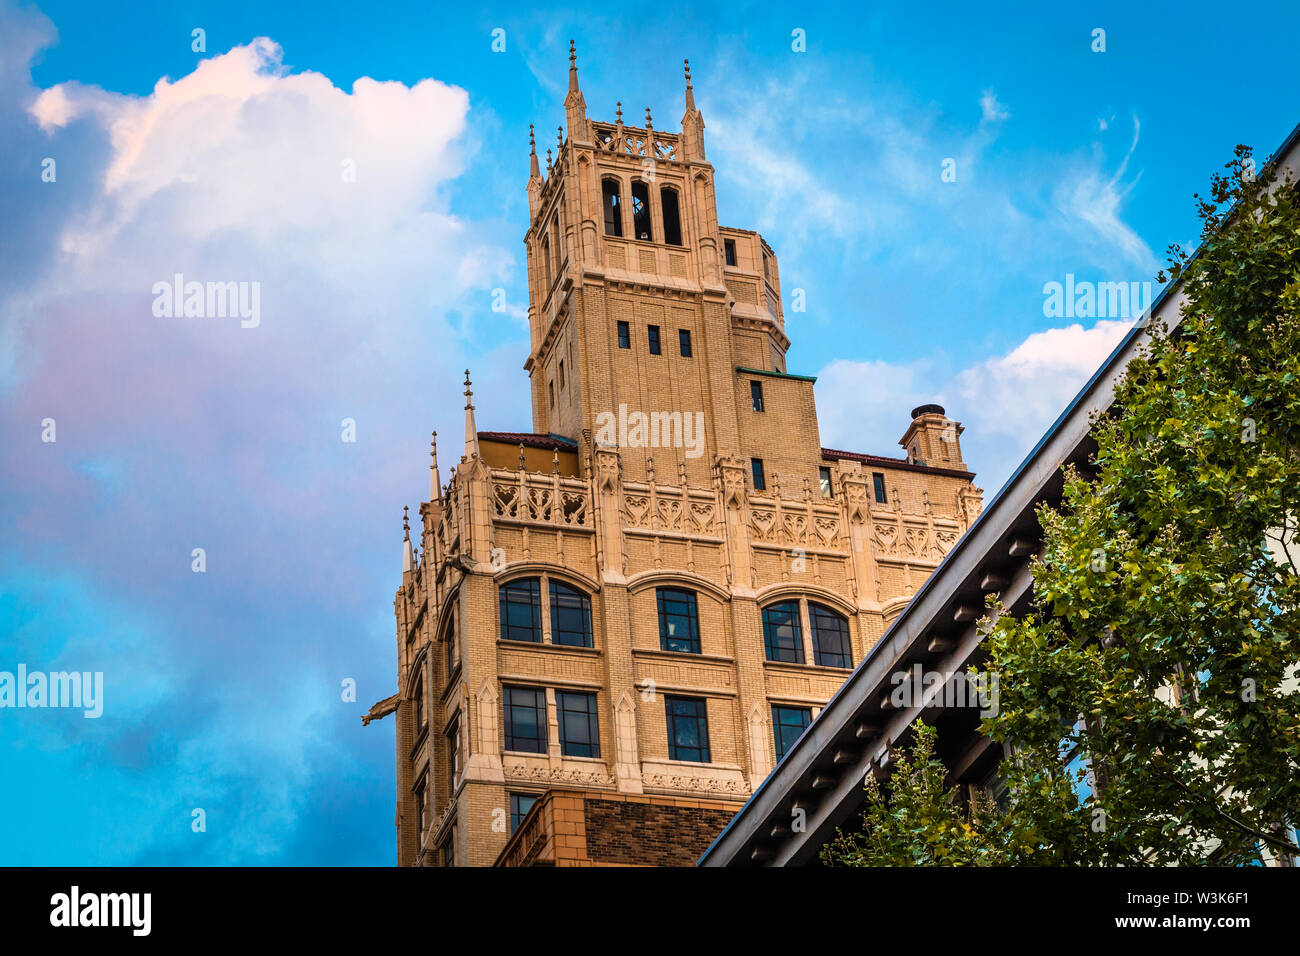 The Jackson Building in Asheville. North Carolina, USA. - Stock Image